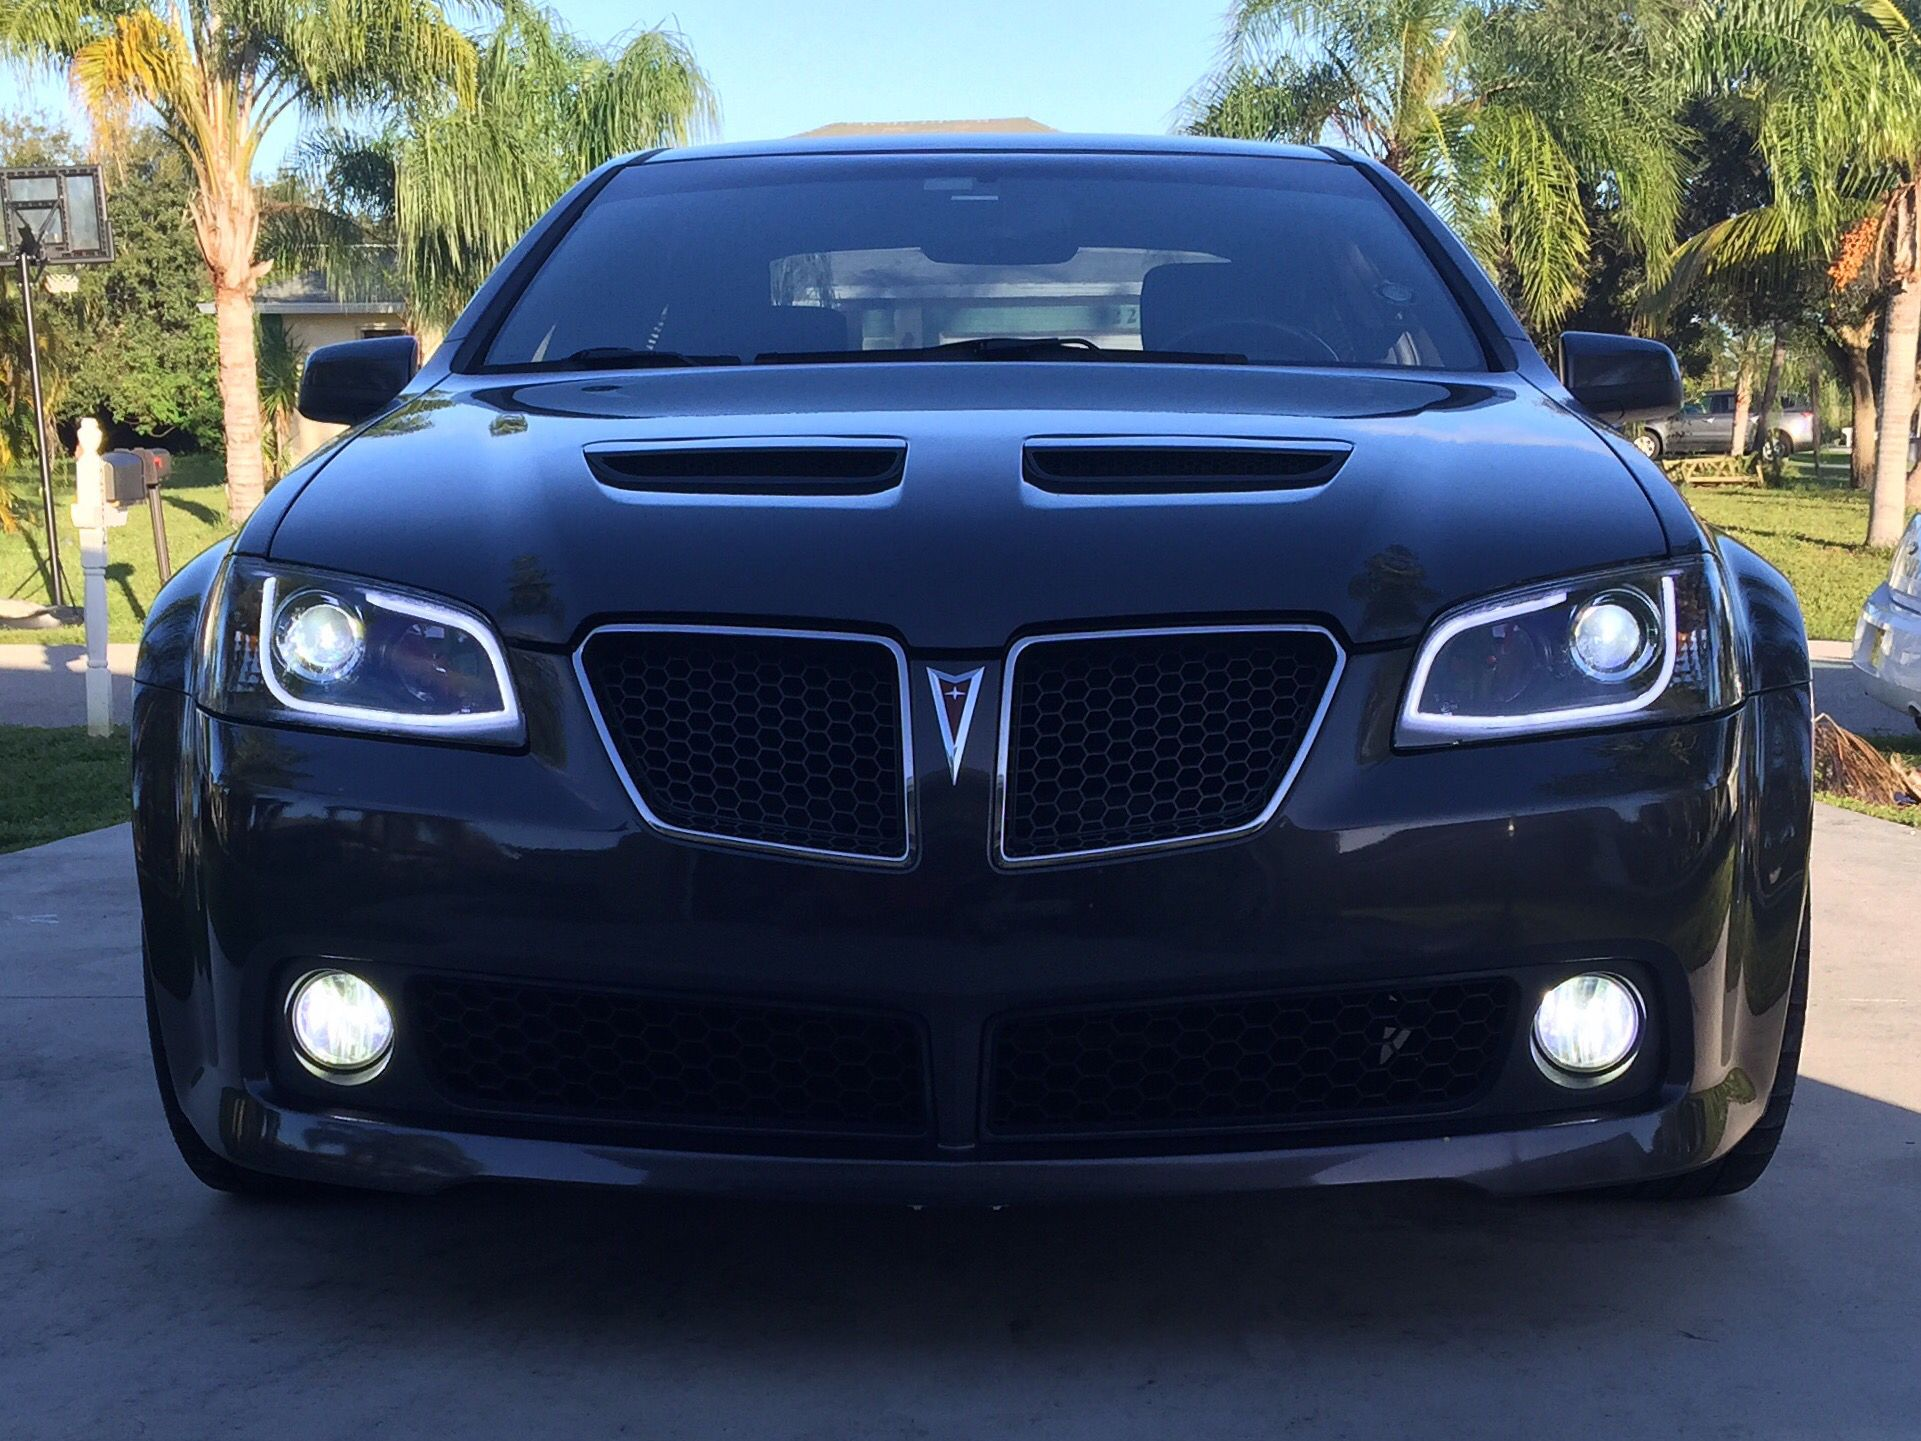 Pontiac G8 GT With Spec D Lights. Led High/low Beams And Fog Lights.